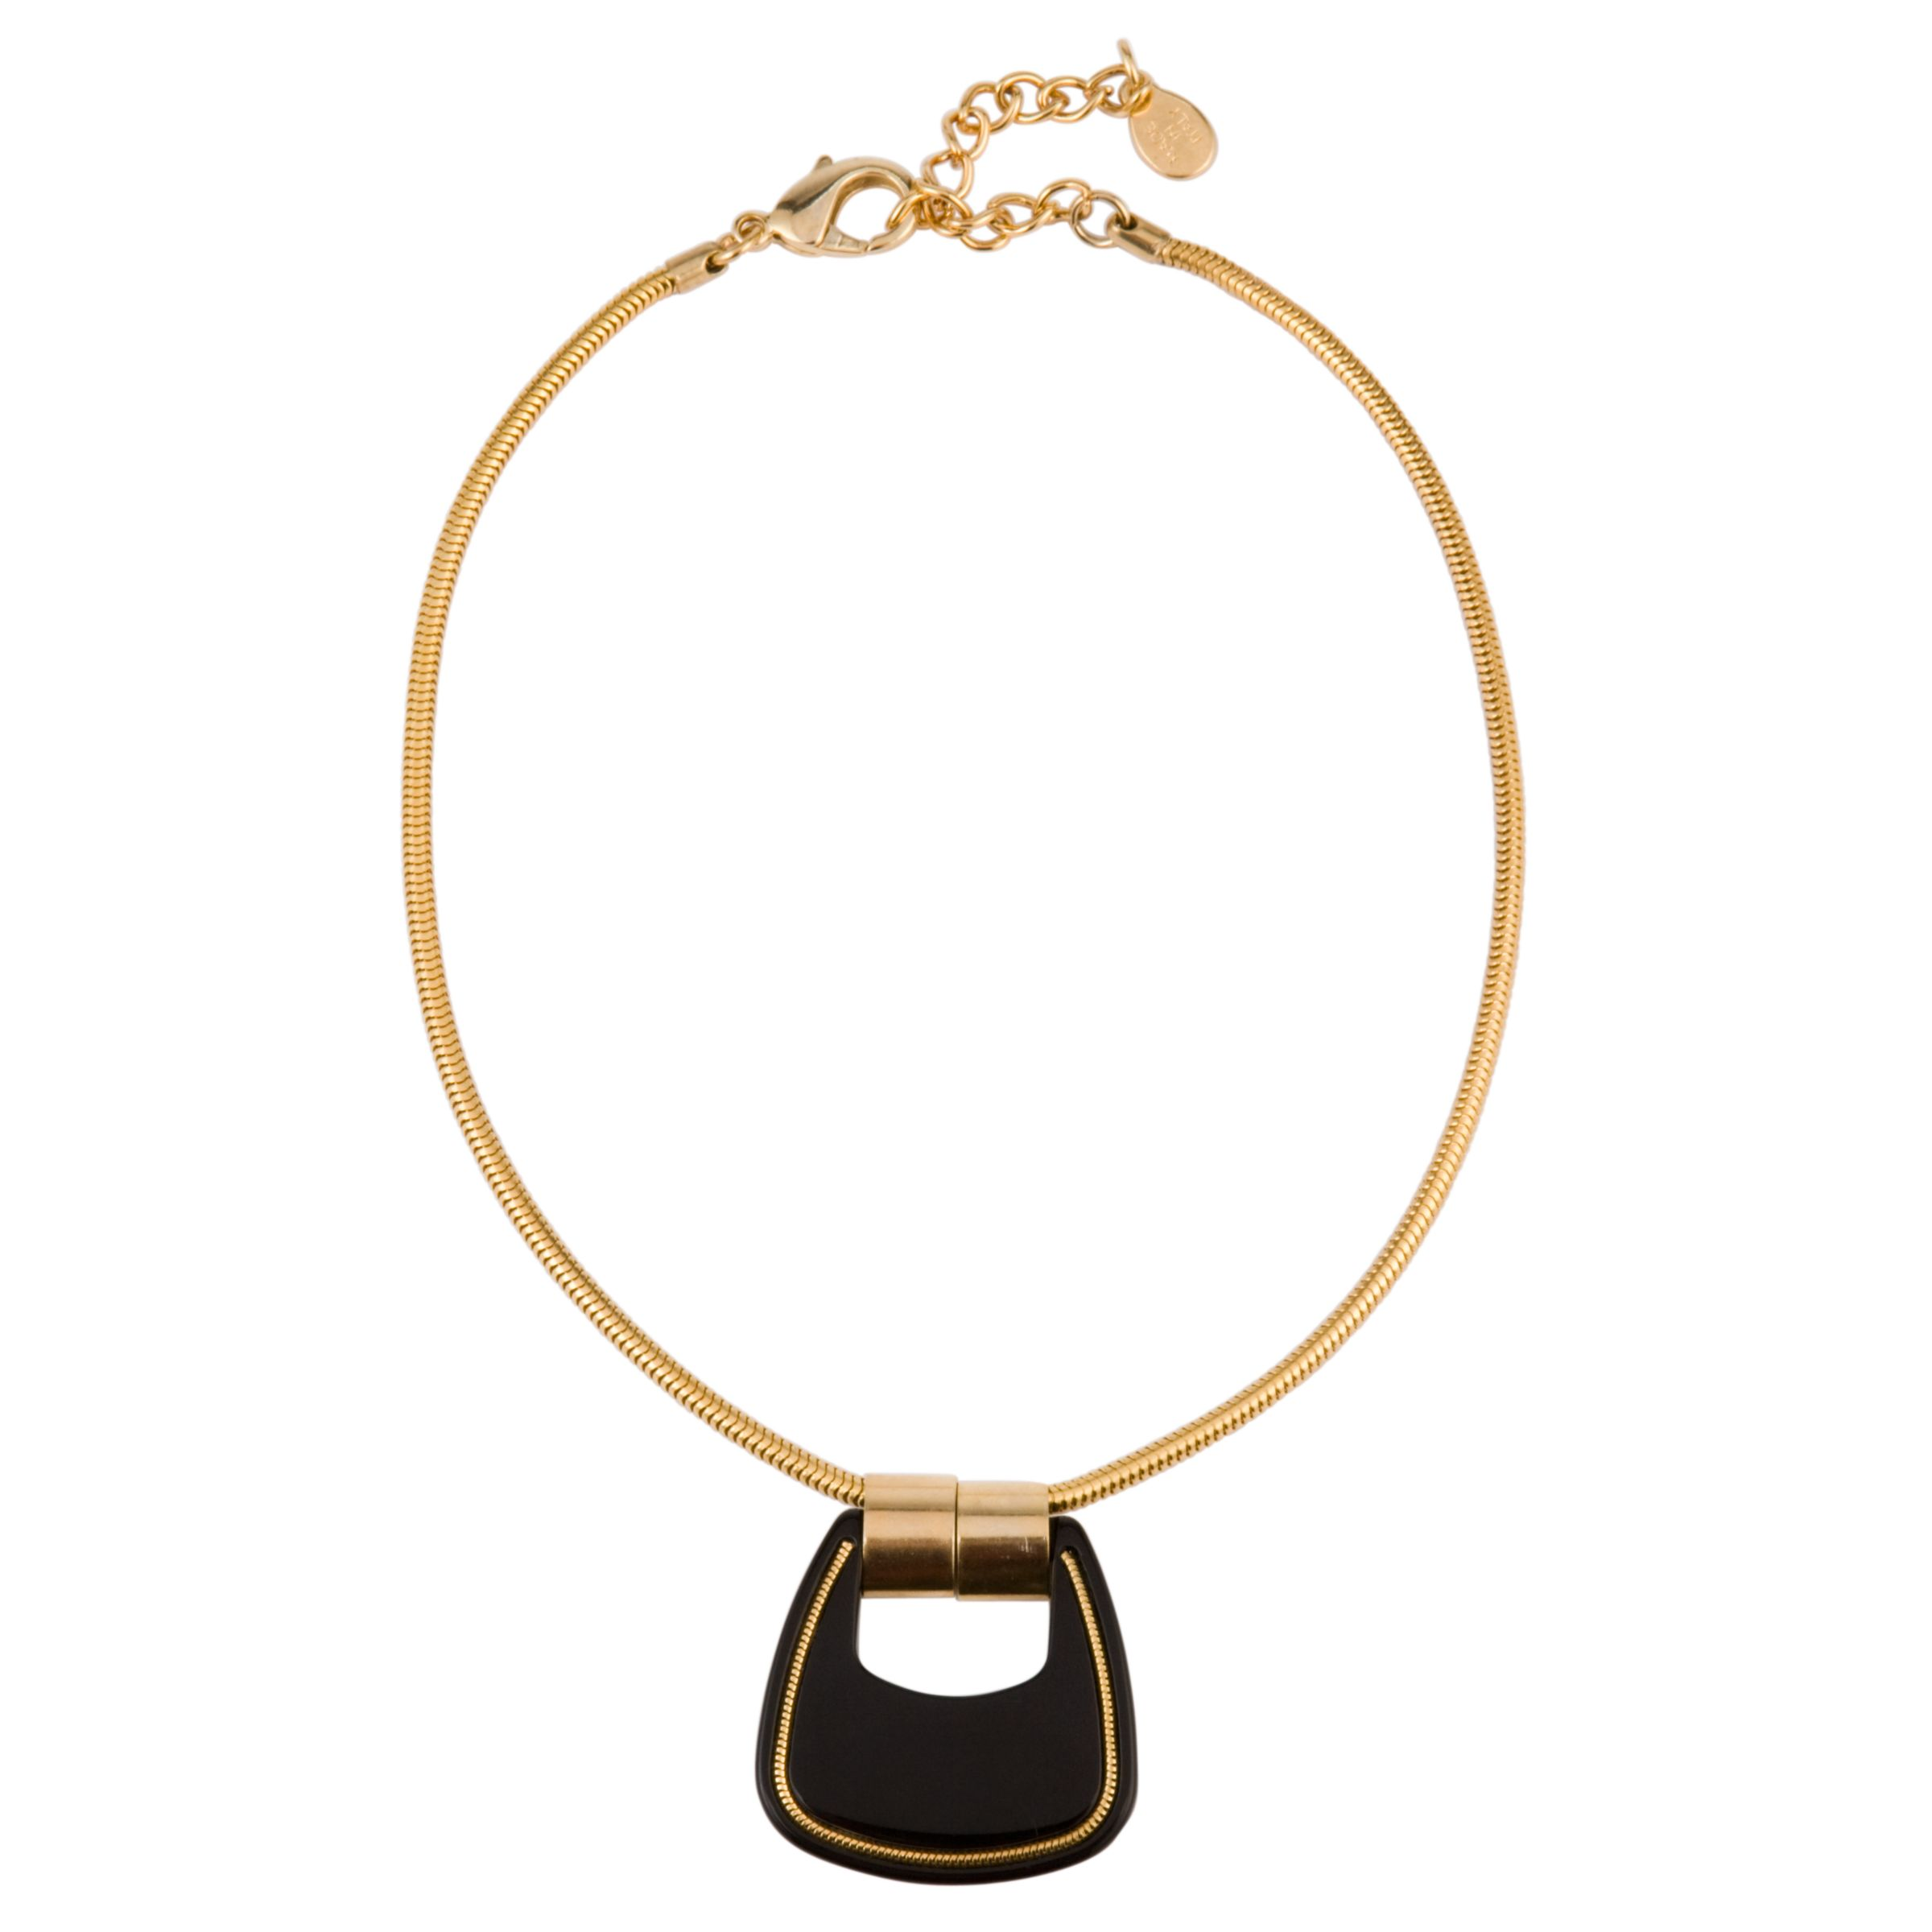 COLLECTION, John Lewis Women Acrylic Gold Chain Black Pendant Necklace